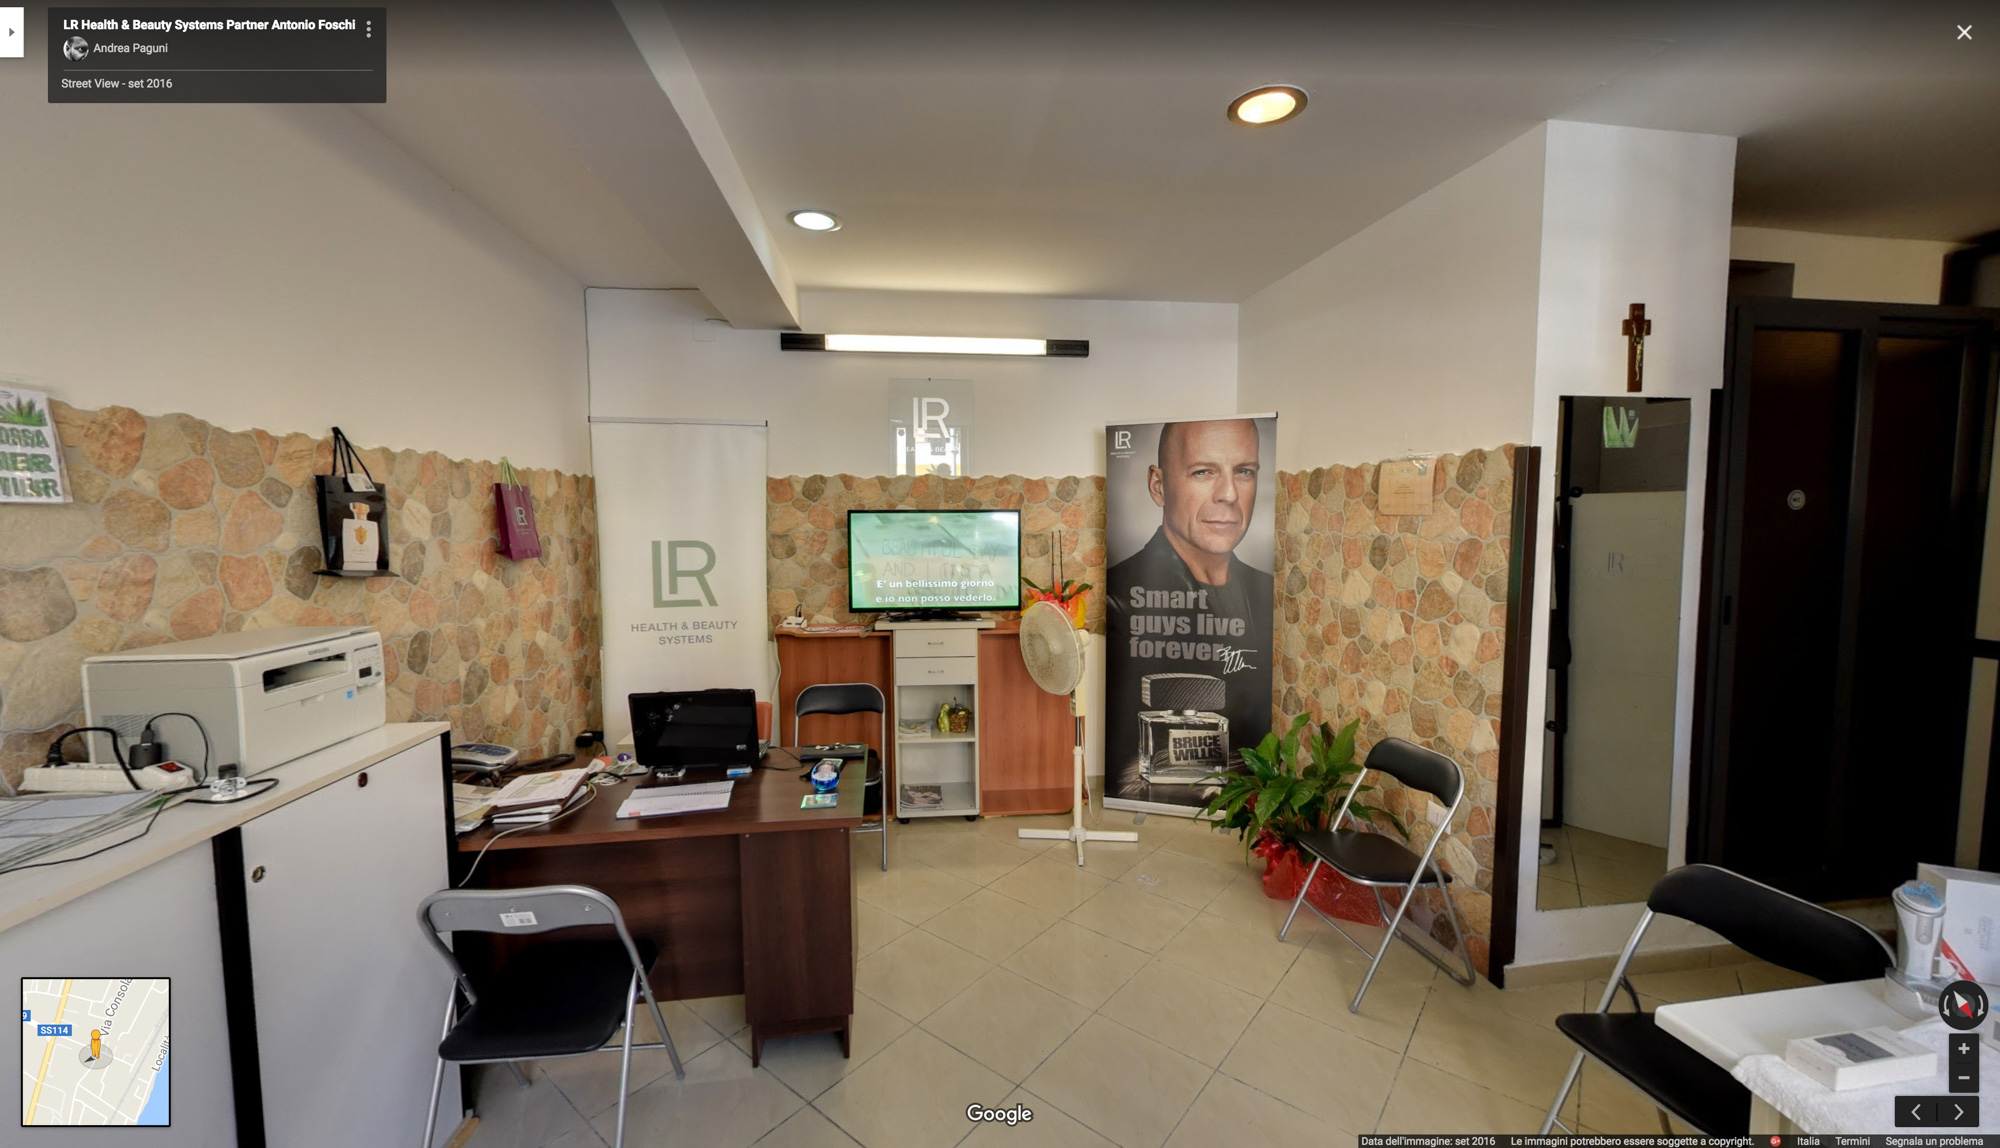 LR Health e Beauty Systems Partner Antonio Foschi